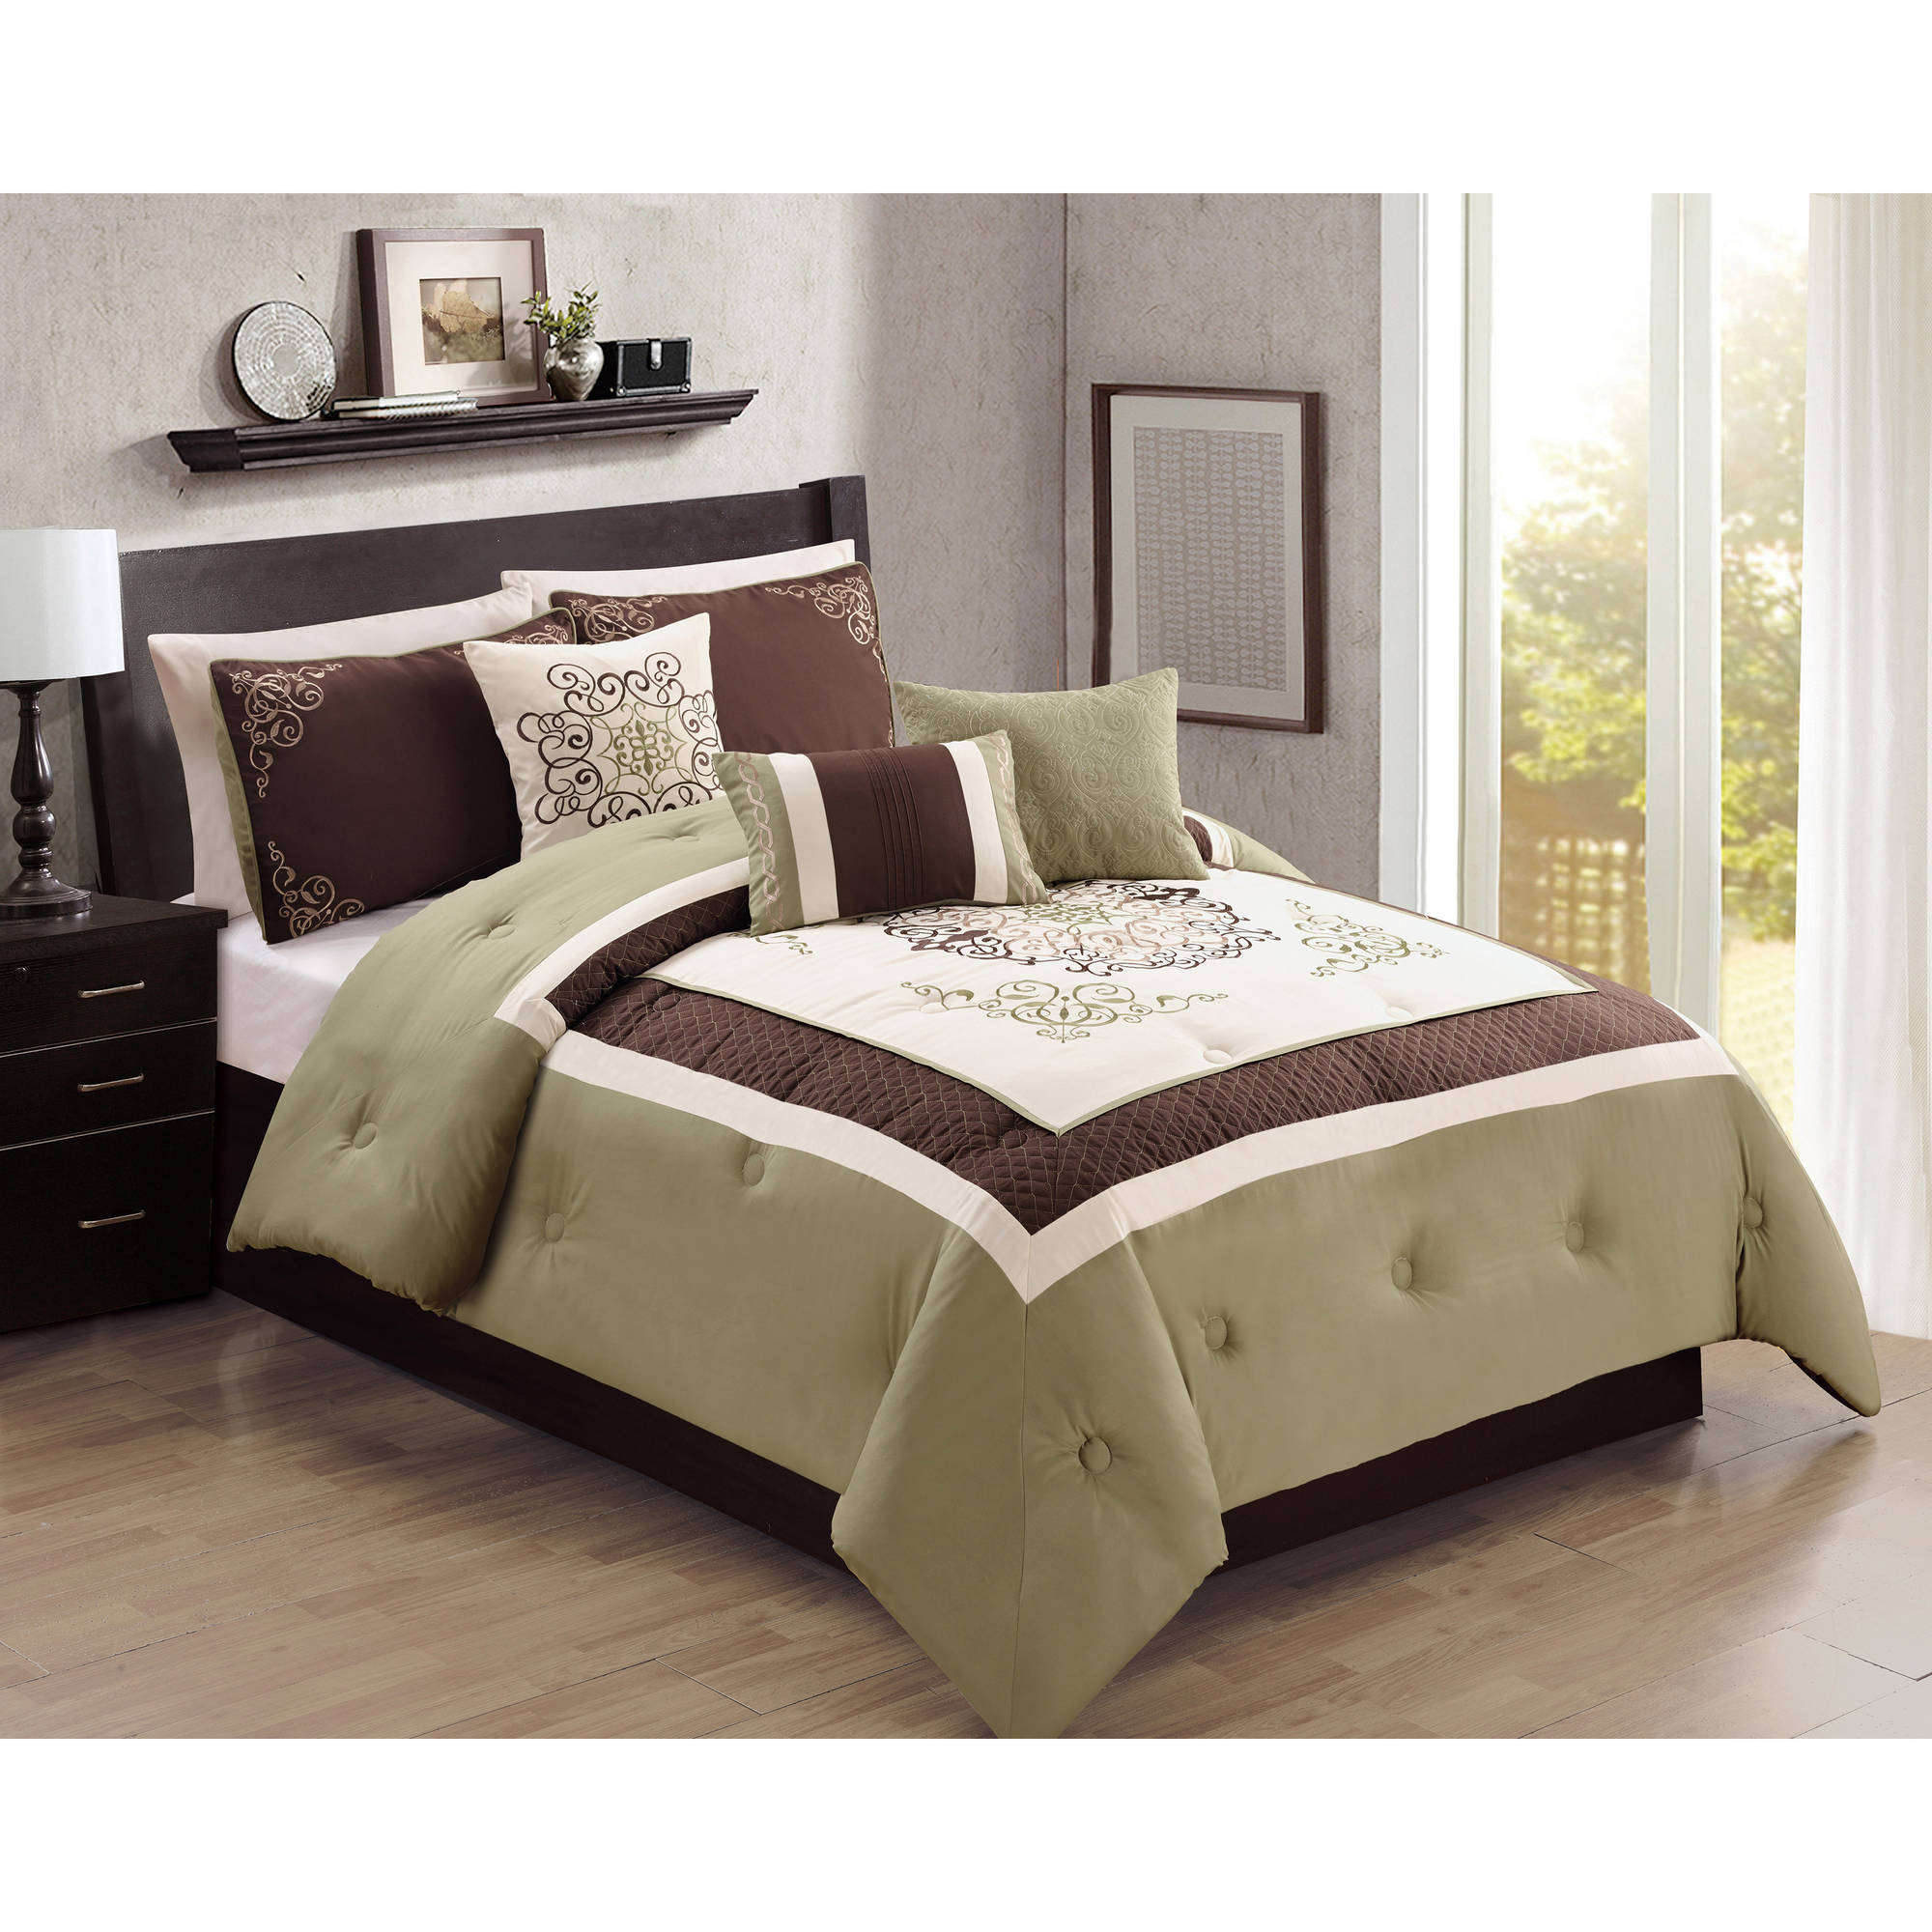 Brown bedding sets queen - Brown Bedding Sets Queen 58